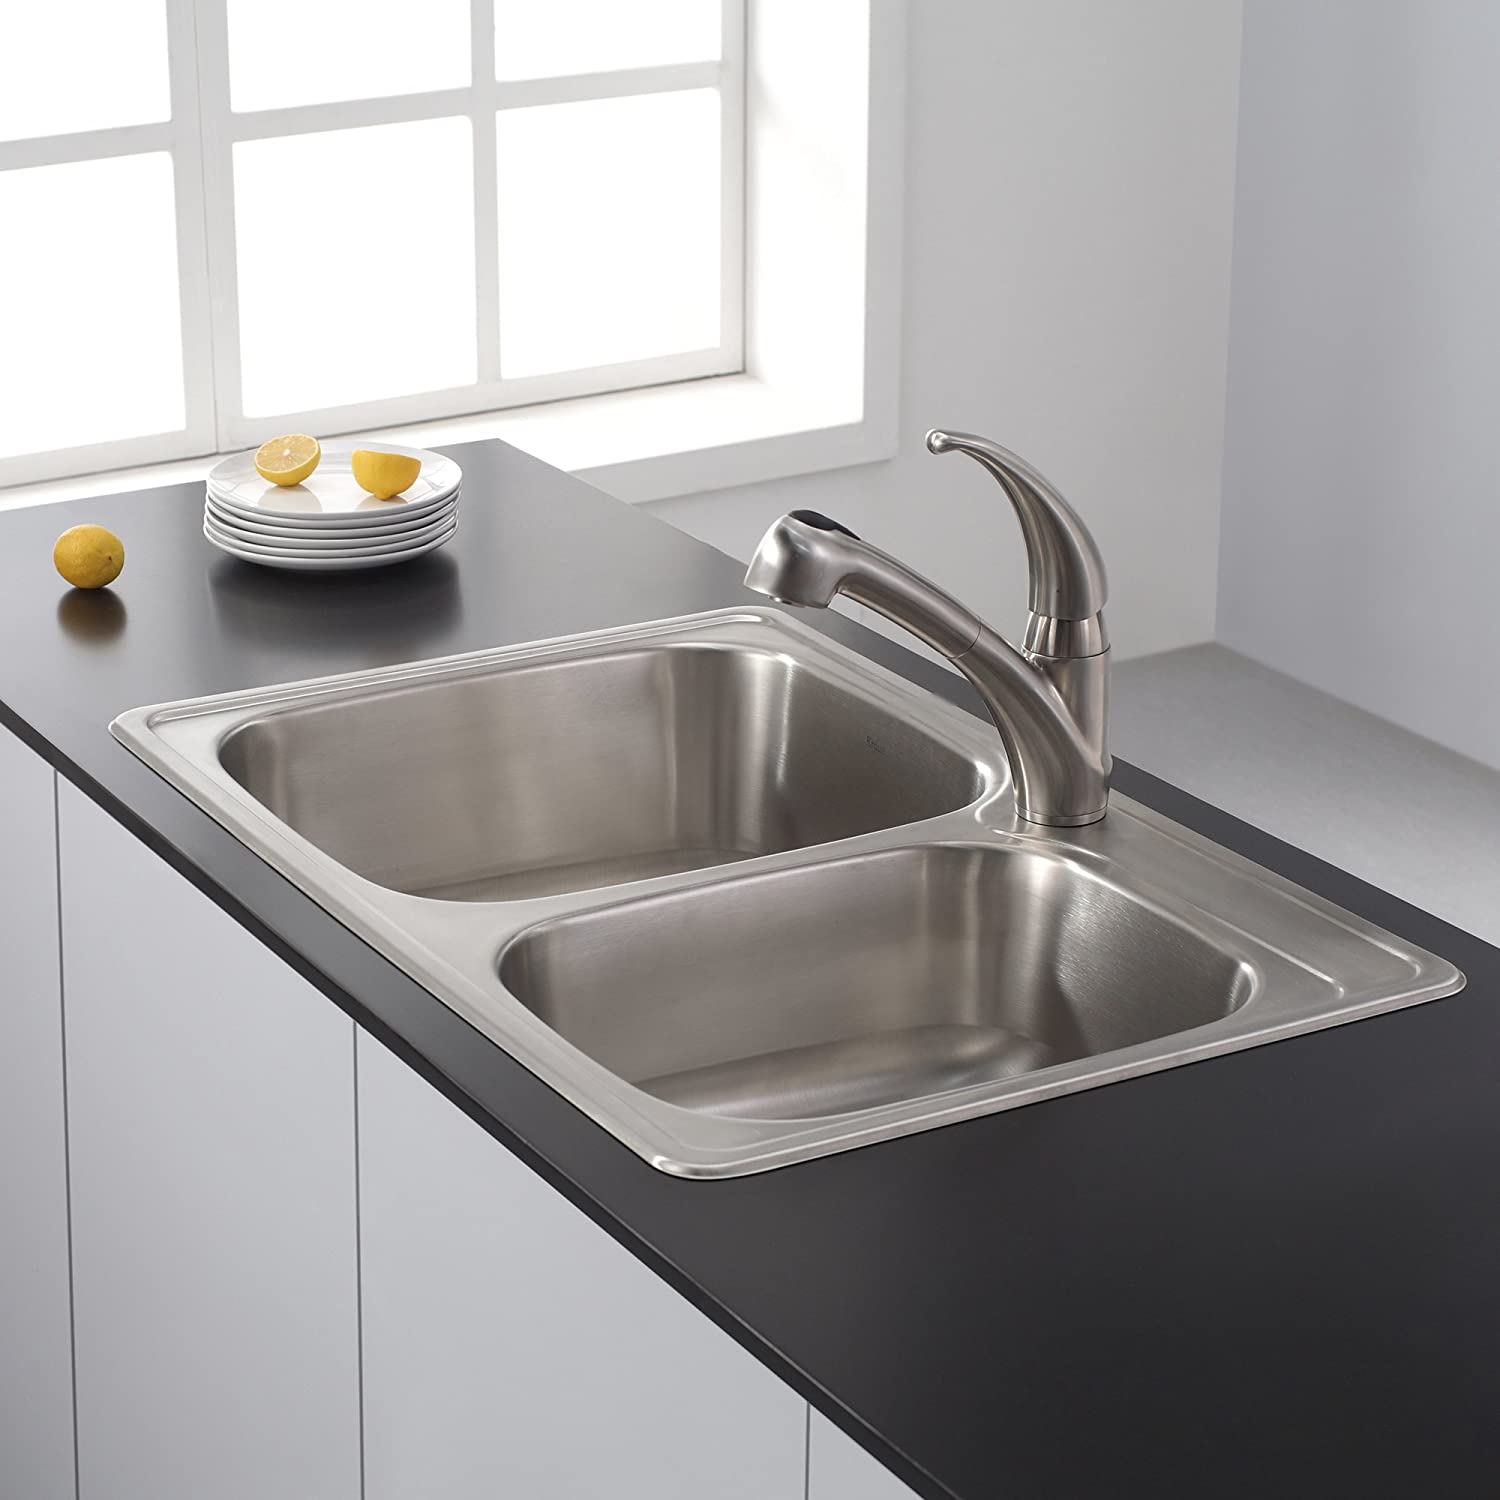 farmhouse soap sinks top kitchen best inch front blog double apron faucet with sink modern dispenser stainless and steel gallery bowl